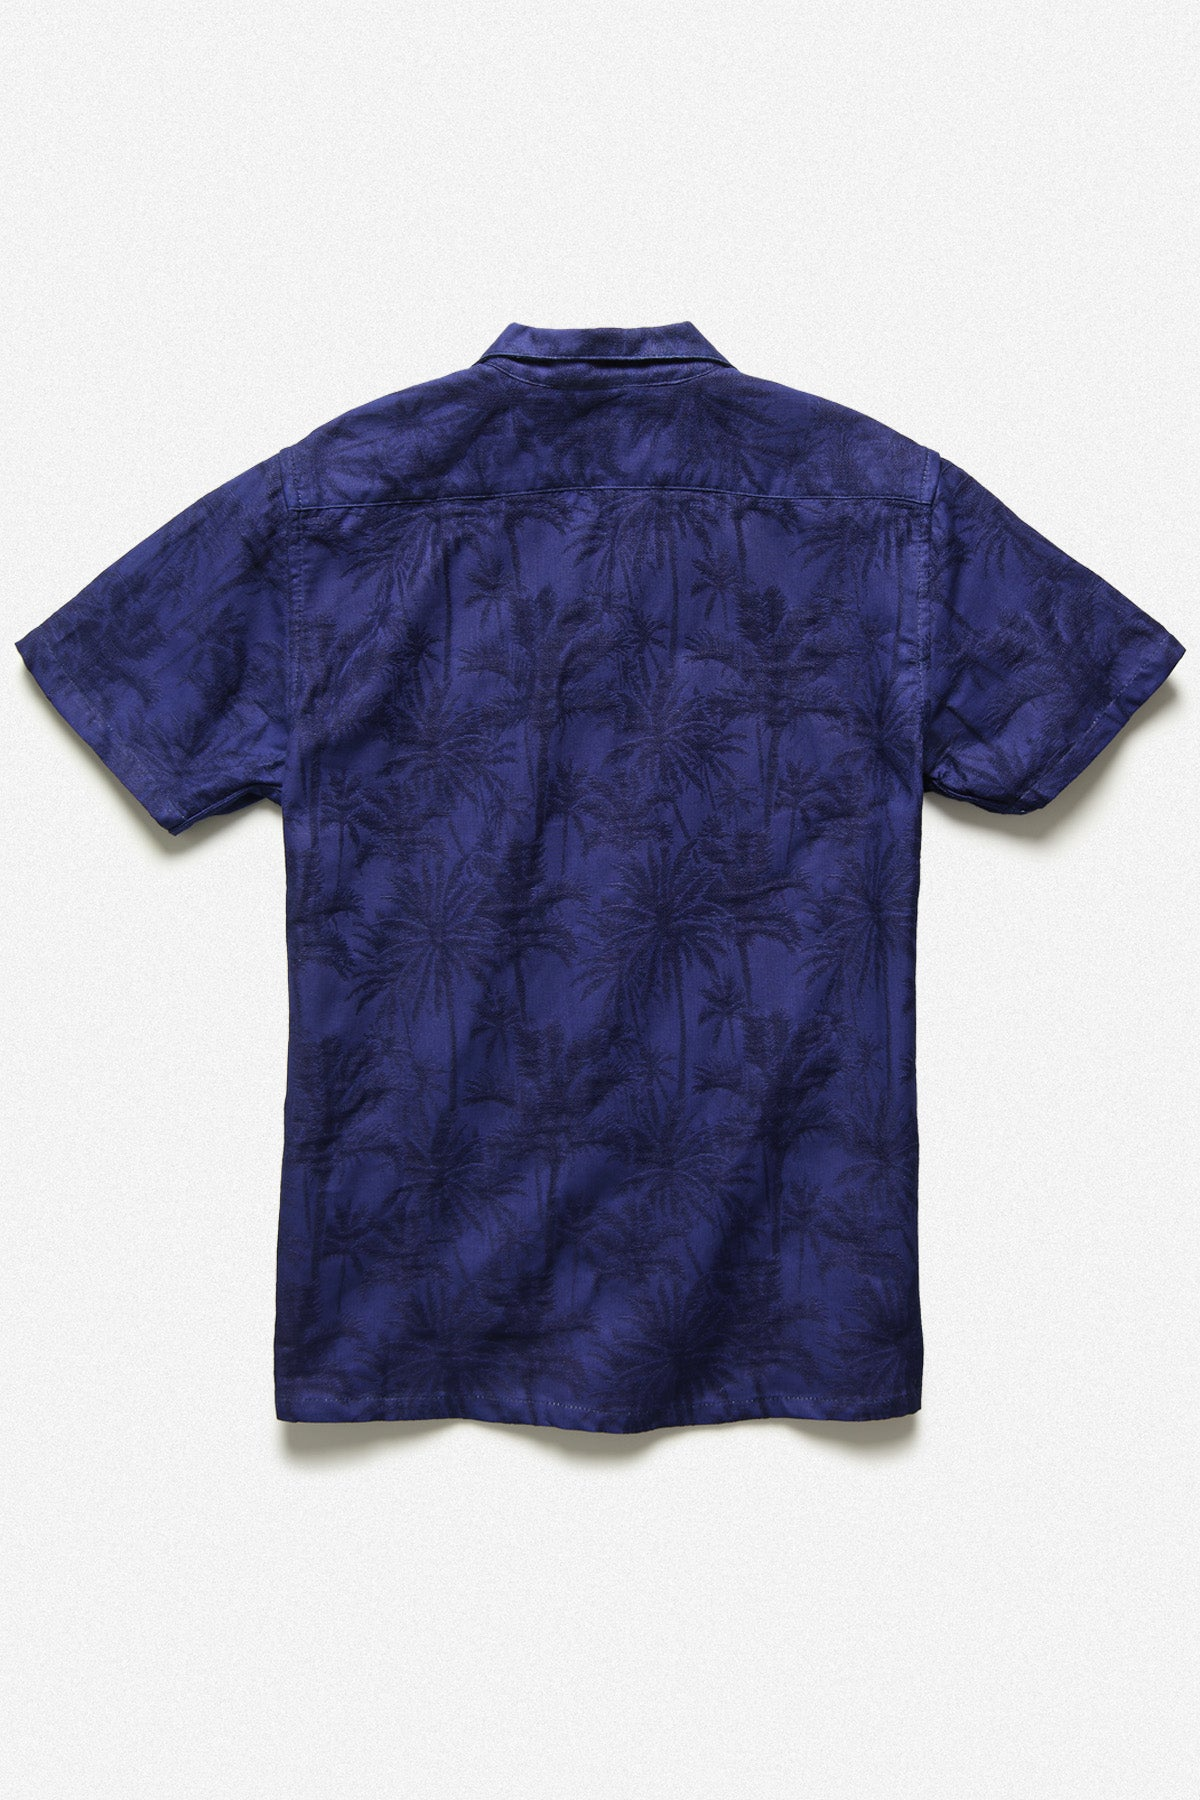 CUBA SHIRT IN INDIGO PALM - Fortune Goods